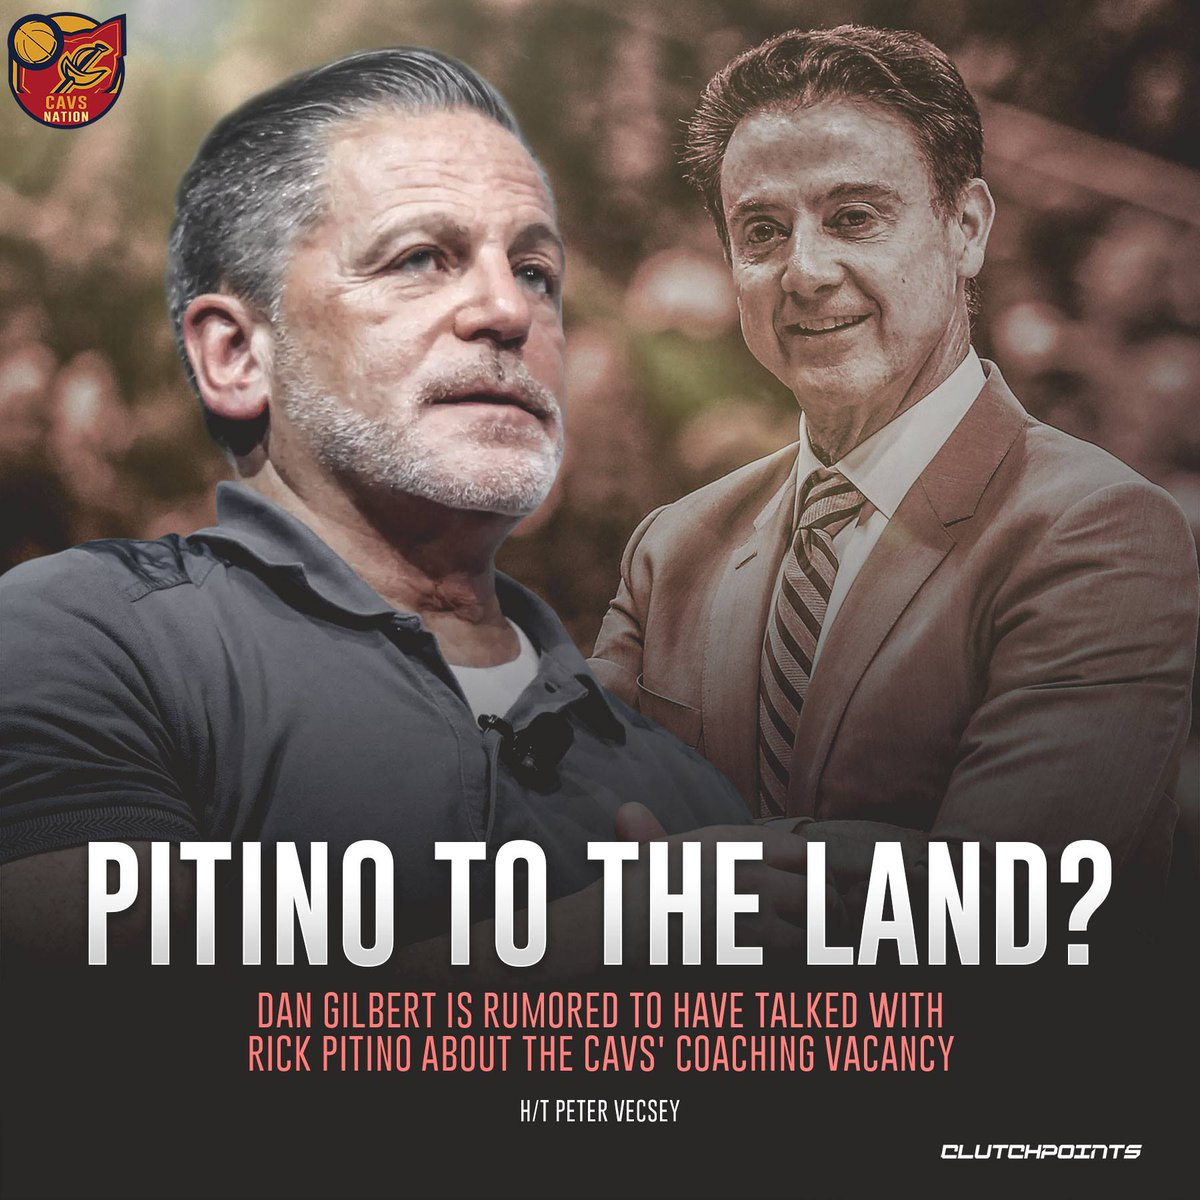 How do you feel about possibly welcoming Rick Pitino to The Land?   #Cavs #BeTheFight #NBA #NBATwitter